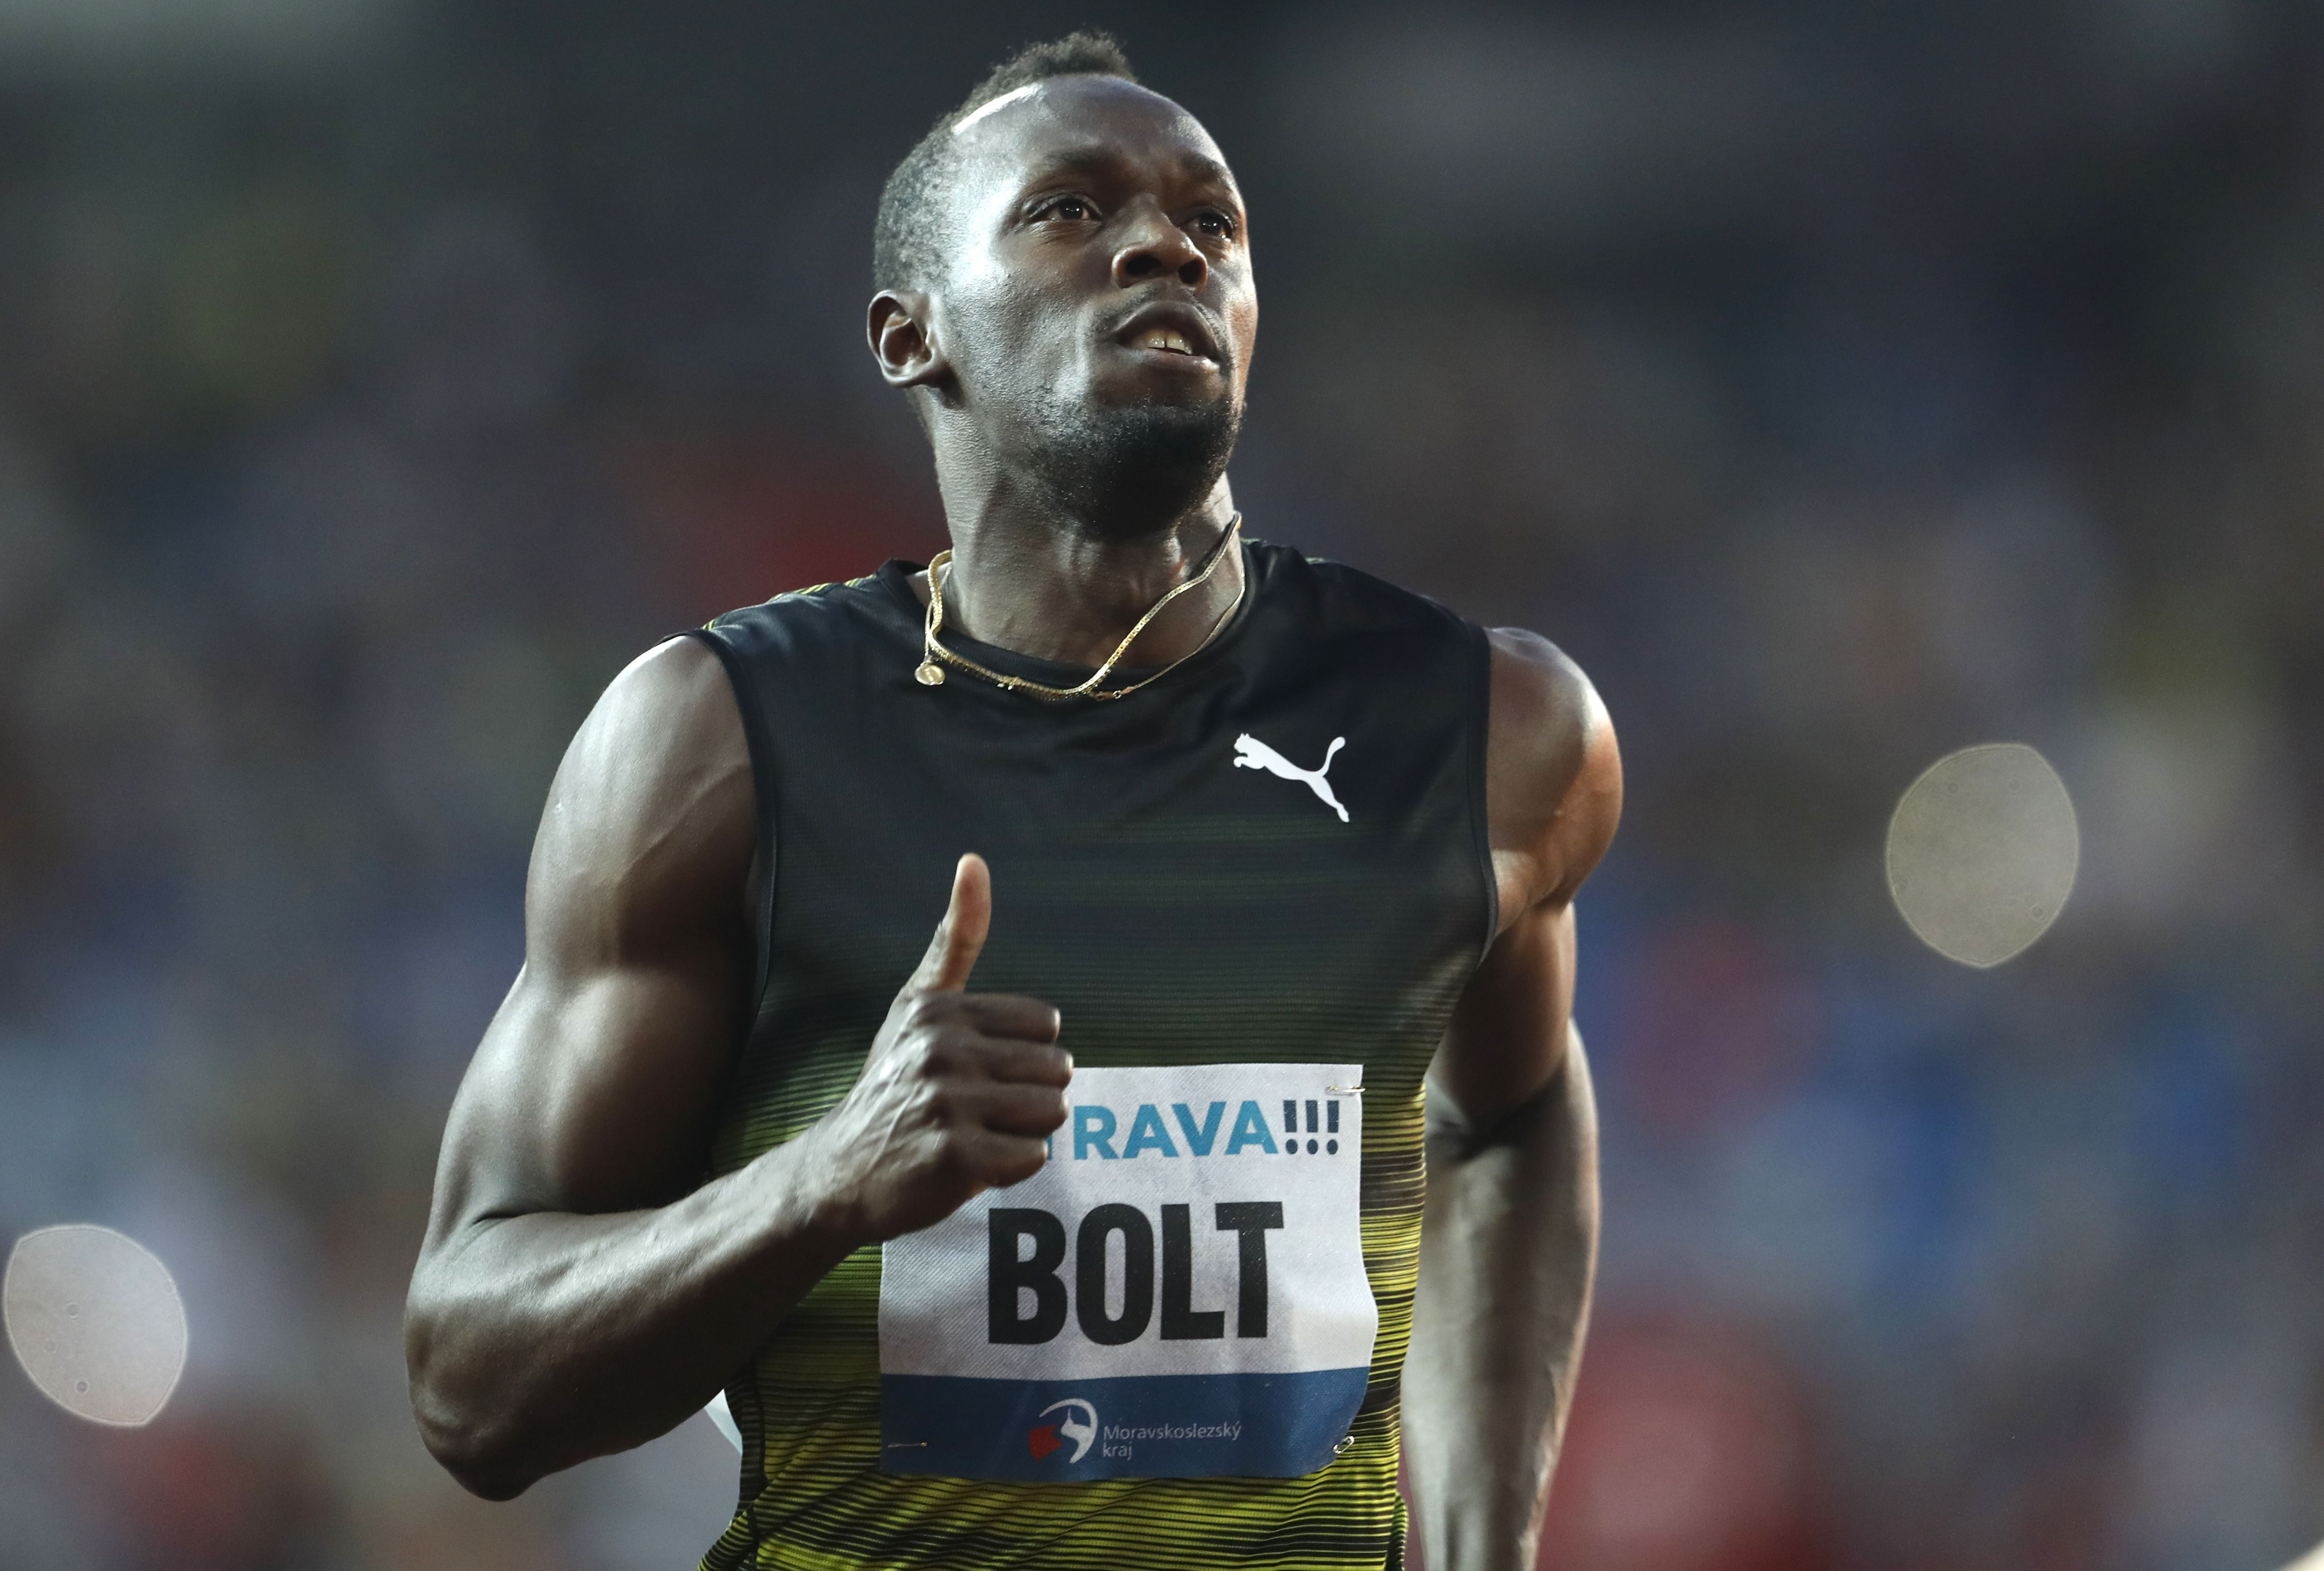 Reveal About Usain Bolt's Stride Upends Sprinting Science